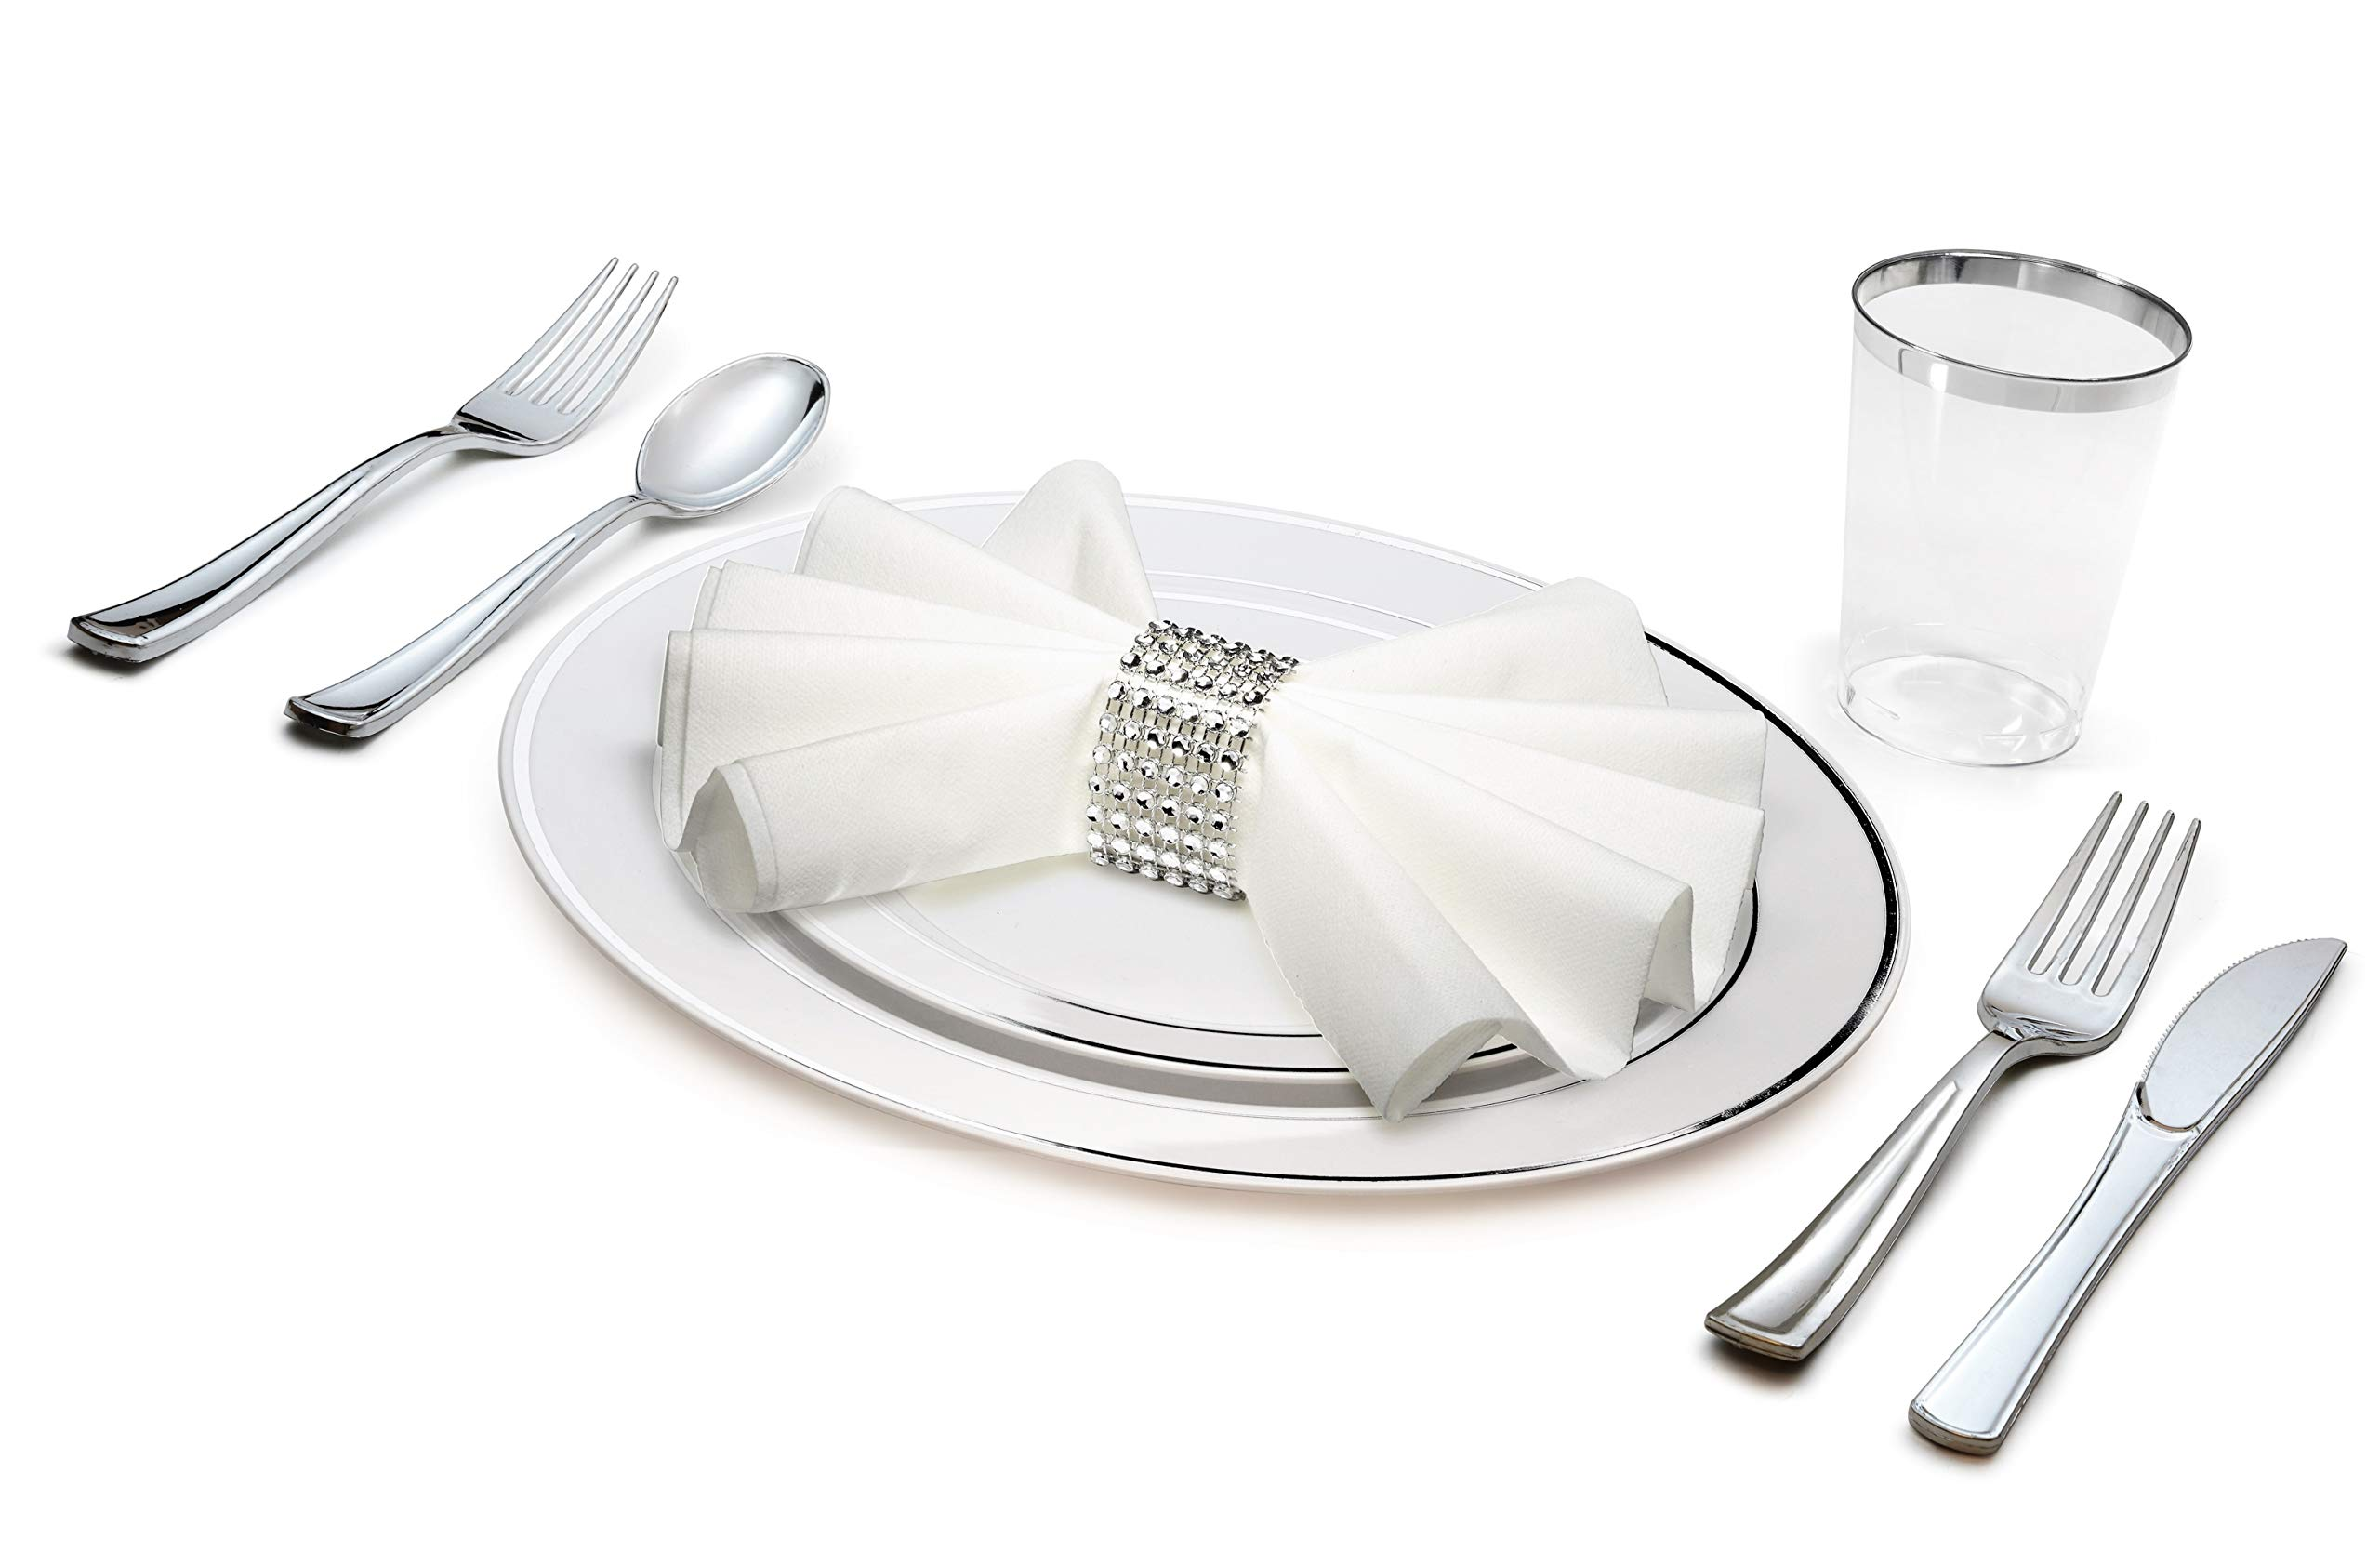 '' OCCASIONS'' 1080 Piece / 120 Guest - Full Tableware Set - Wedding Disposable Plastic Plates, Plastic Silverware, Silver Rimmed Tumblers & Linen Feel Napkins w/napkin Rings (Combo C, White/Silver)